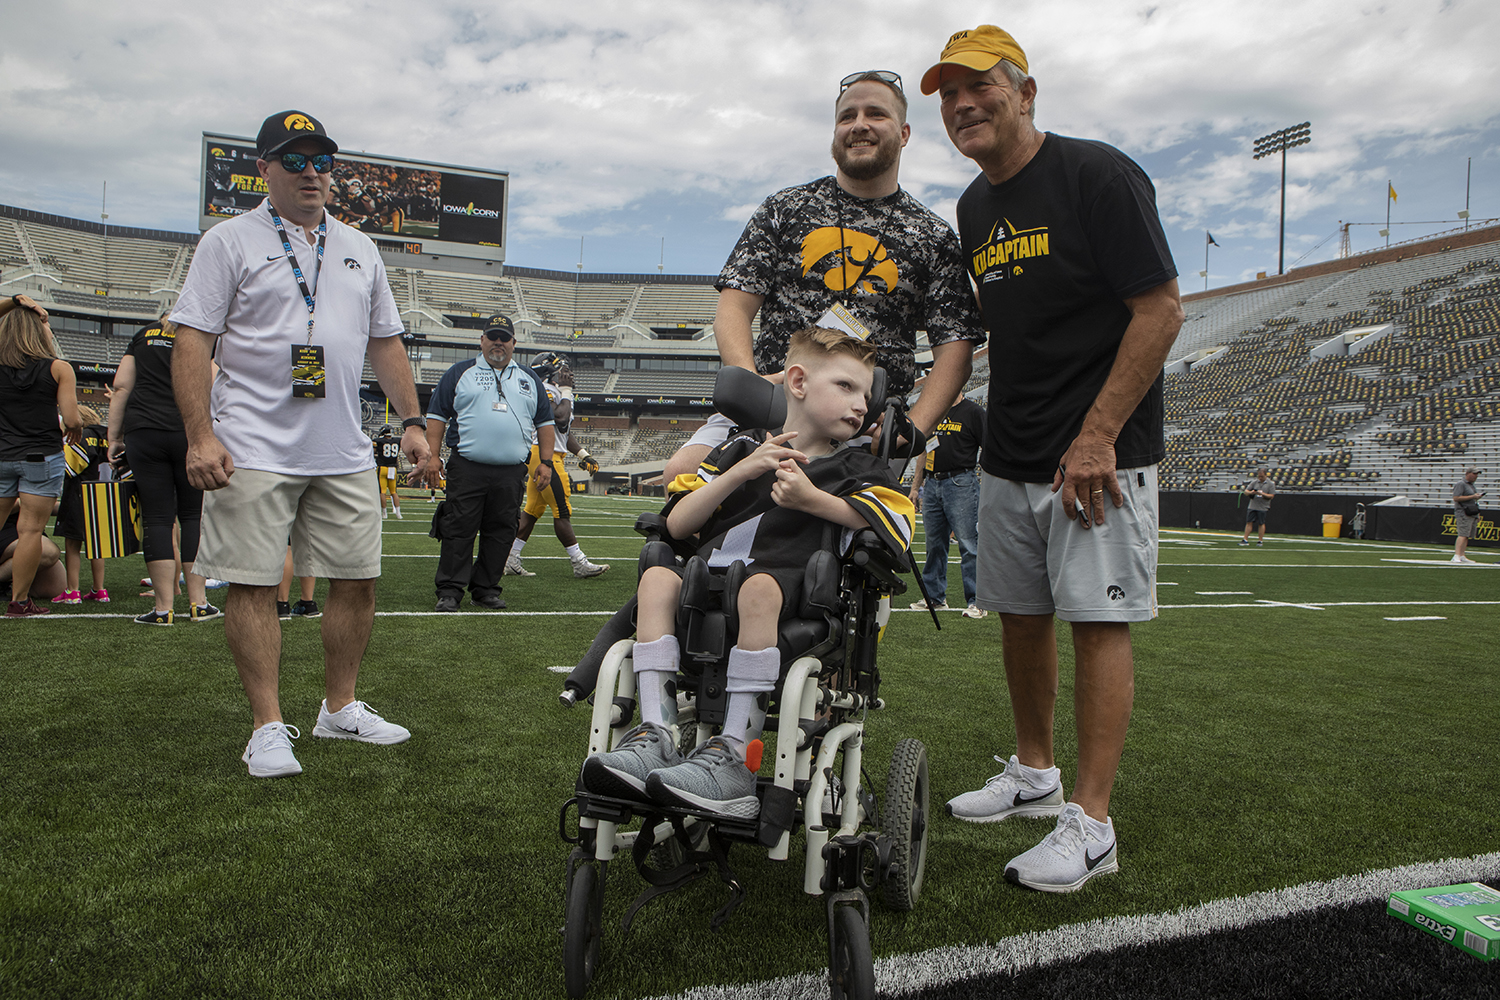 Kid Captain Cien Currie and his father pose for a picture Hawkeye Football Head Coach Kirk Ferentz at Kids Day at Kinnick on Saturday, August 10, 2019. Kids Day at Kinnick is an annual event for families to experience Iowa's football stadium, while watching preseason practice and honoring this year's Kid Captains.